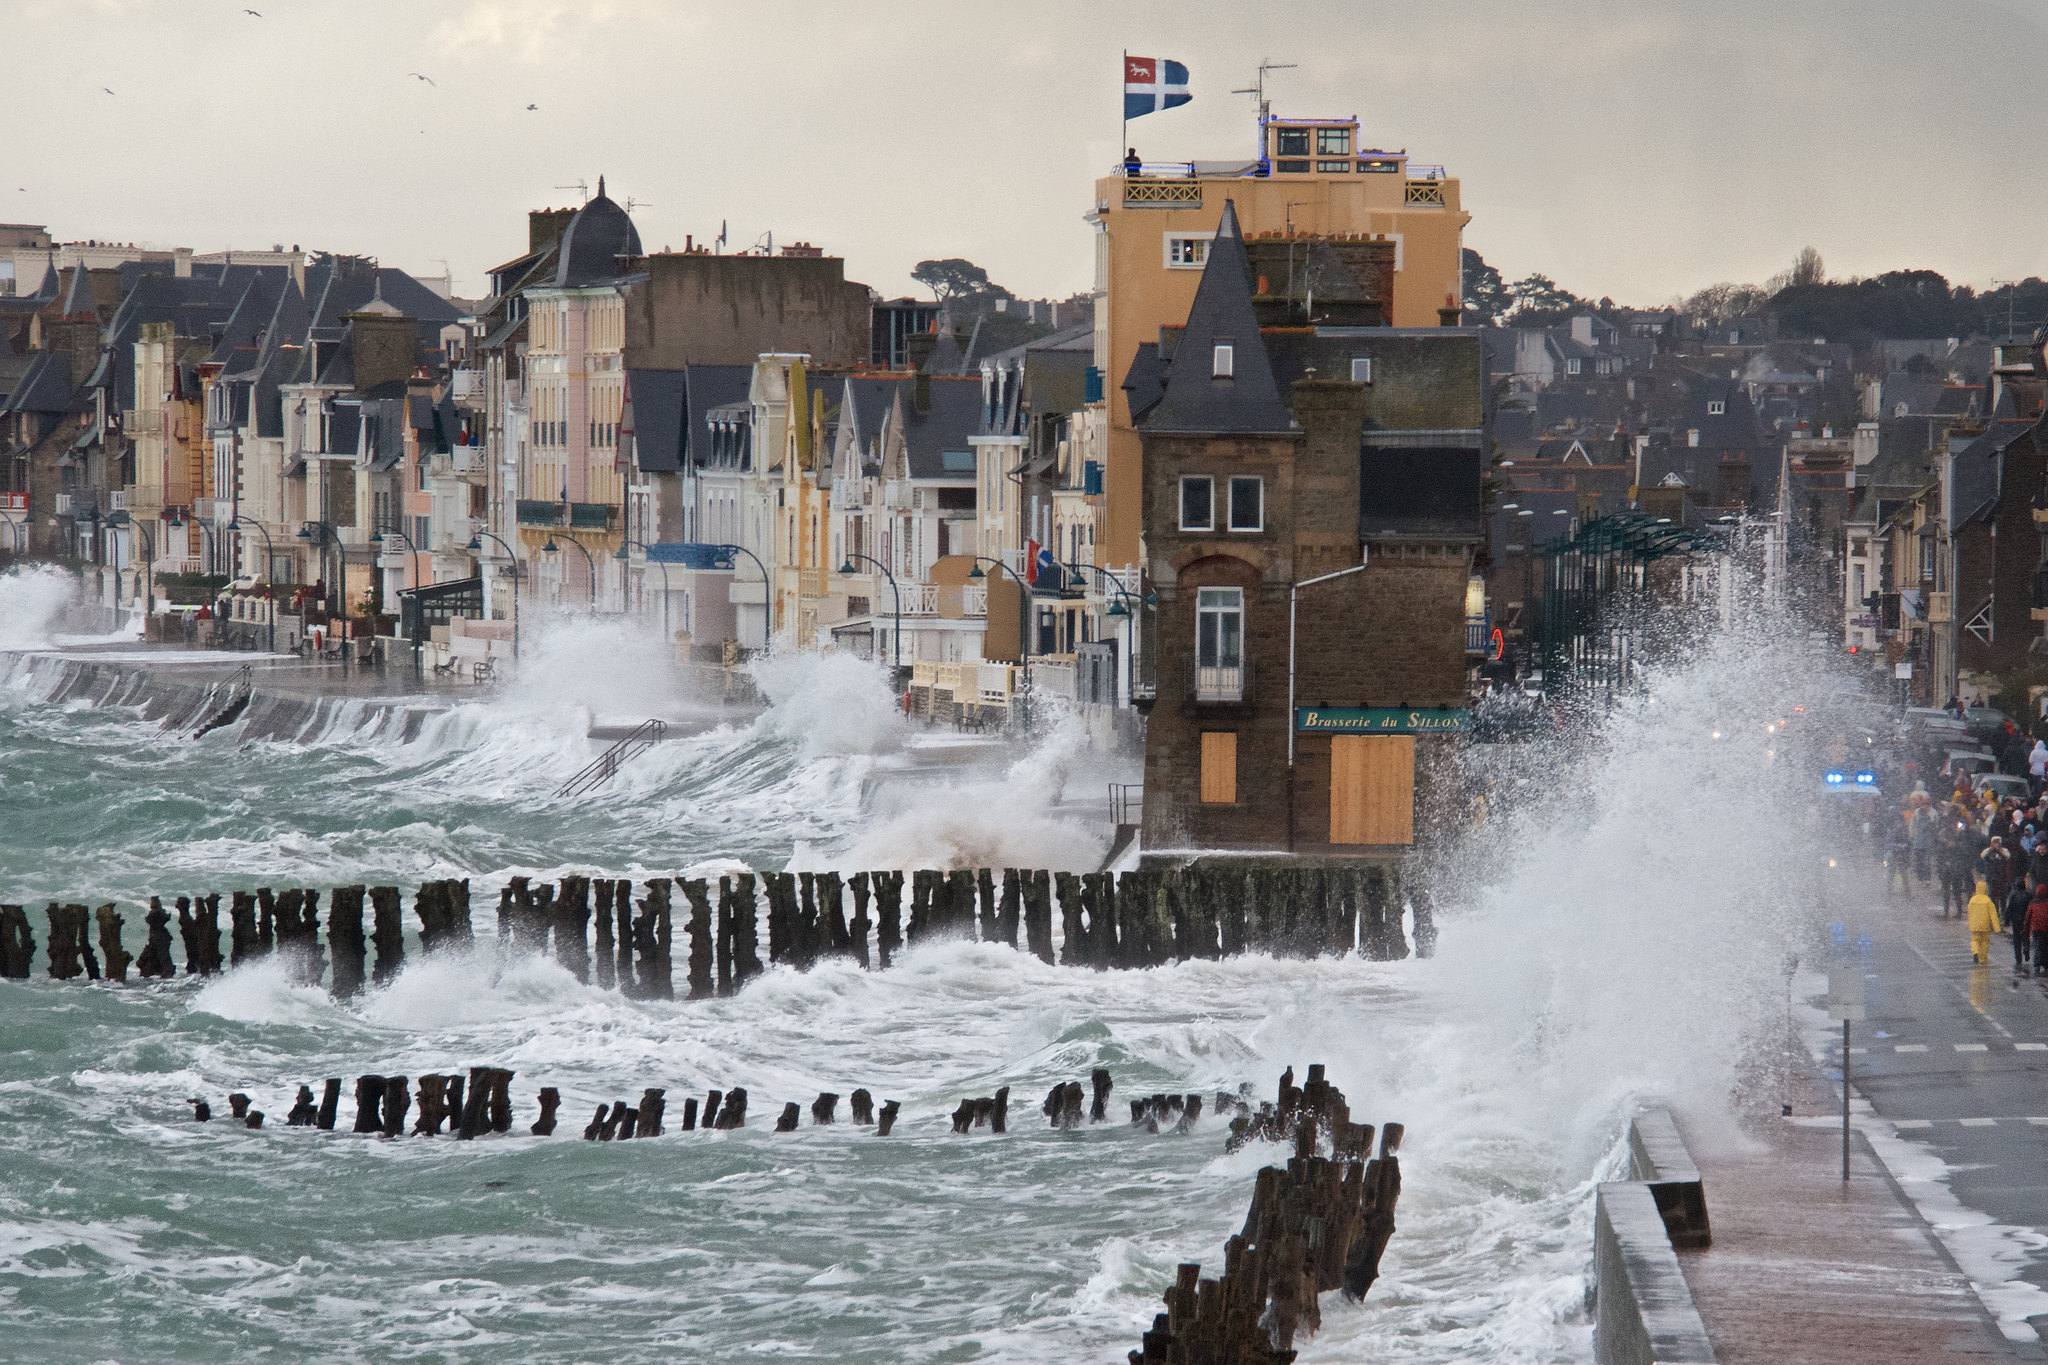 Saint-Malo France  city photos gallery : Rough sea at St. Malo, France » Imgday.com